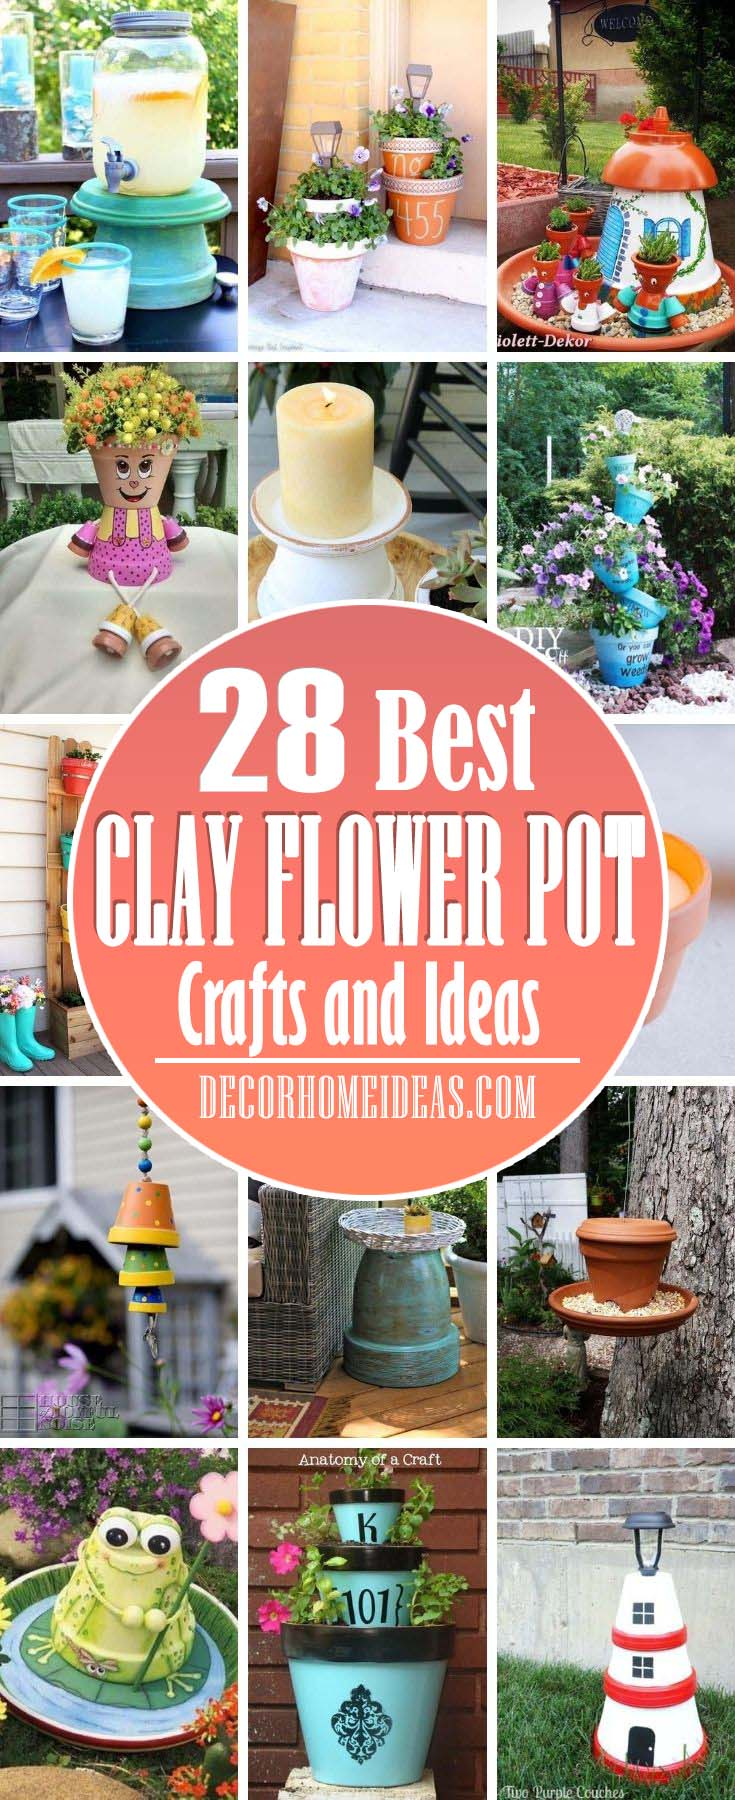 Best Clay Flower Pot Crafts. Simple, easy, and fun clay flower pot crafts and ideas.  Make terra cotta pot crafts for all holidays - Christmas, Halloween, Thanksgiving, Easter, etc. #decorhomeideas